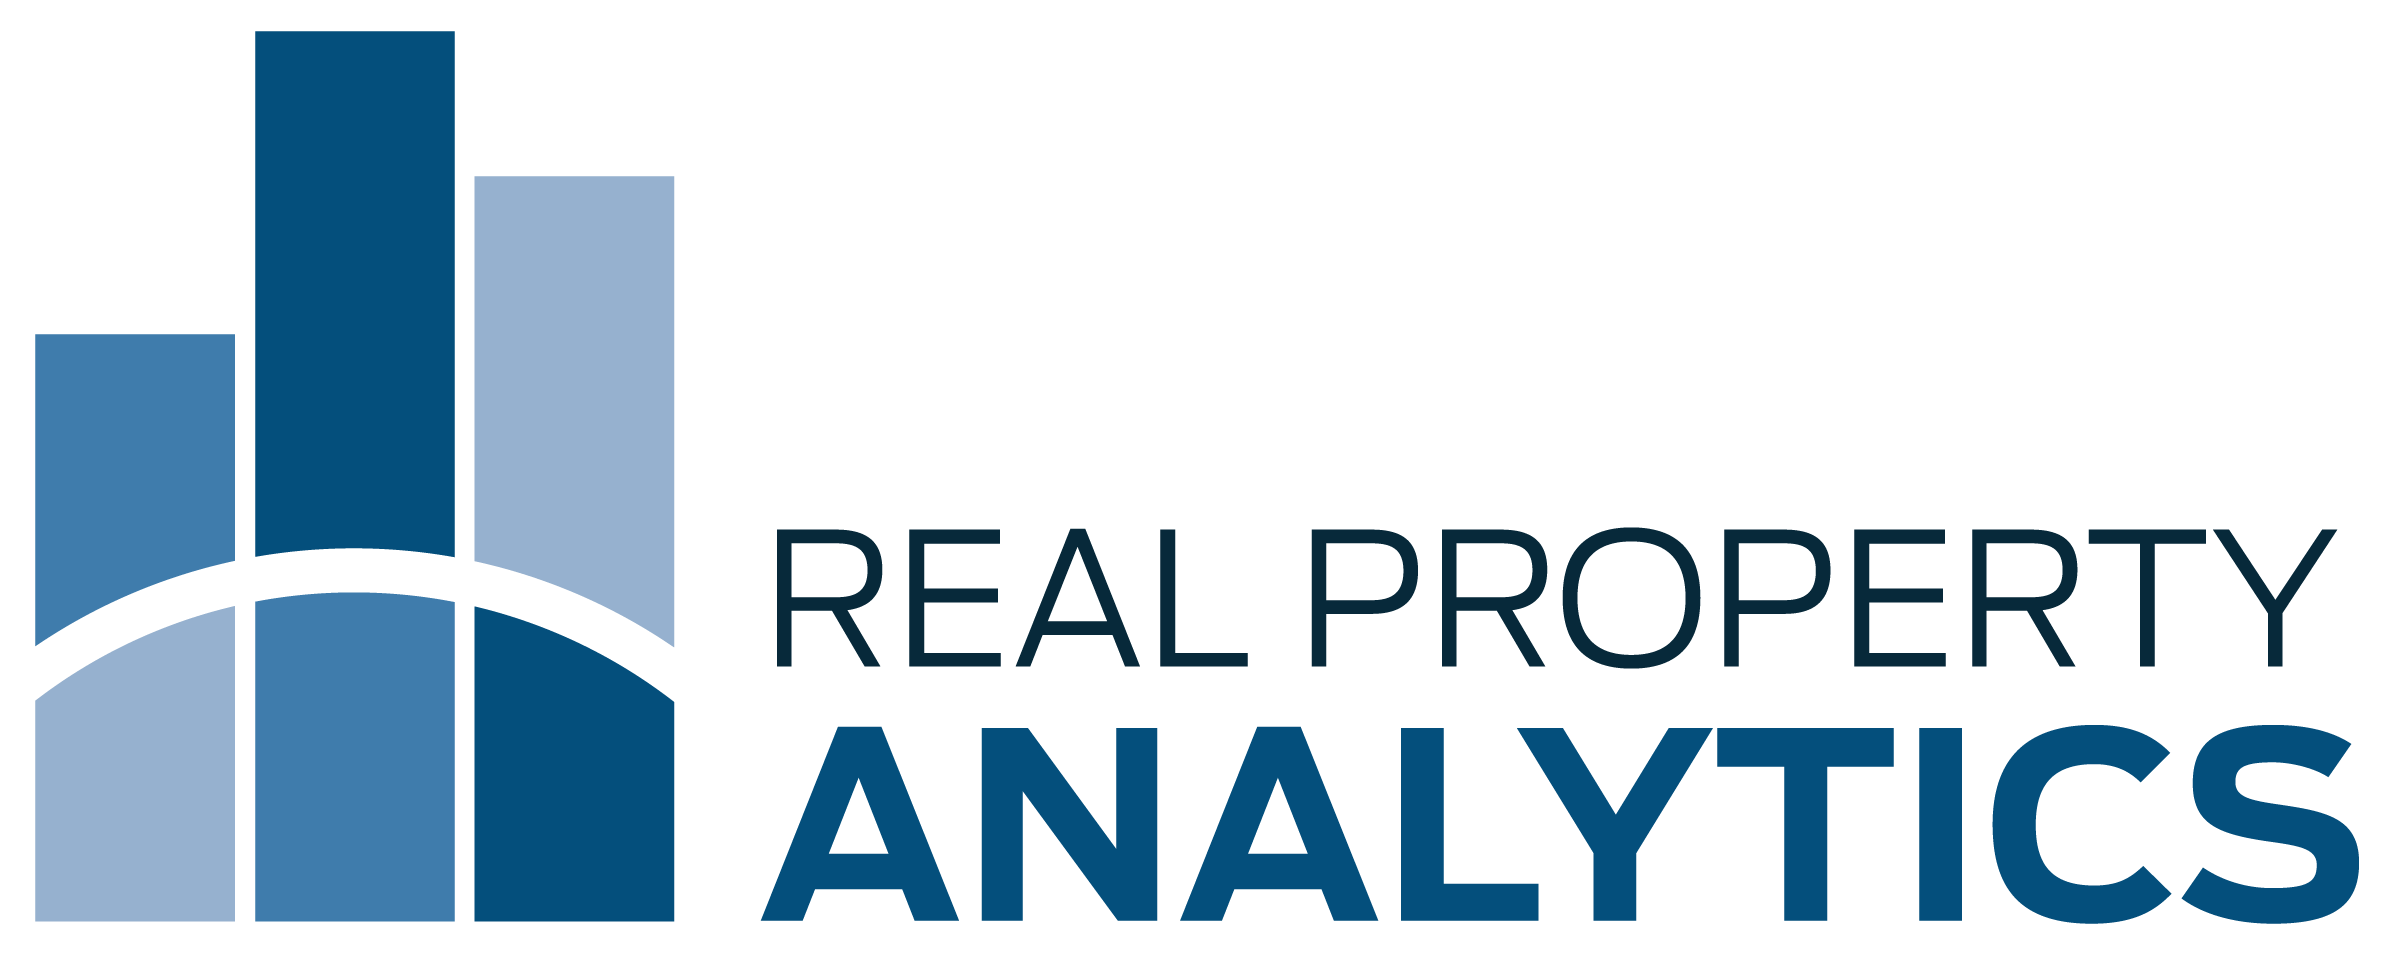 Real Property Analytics